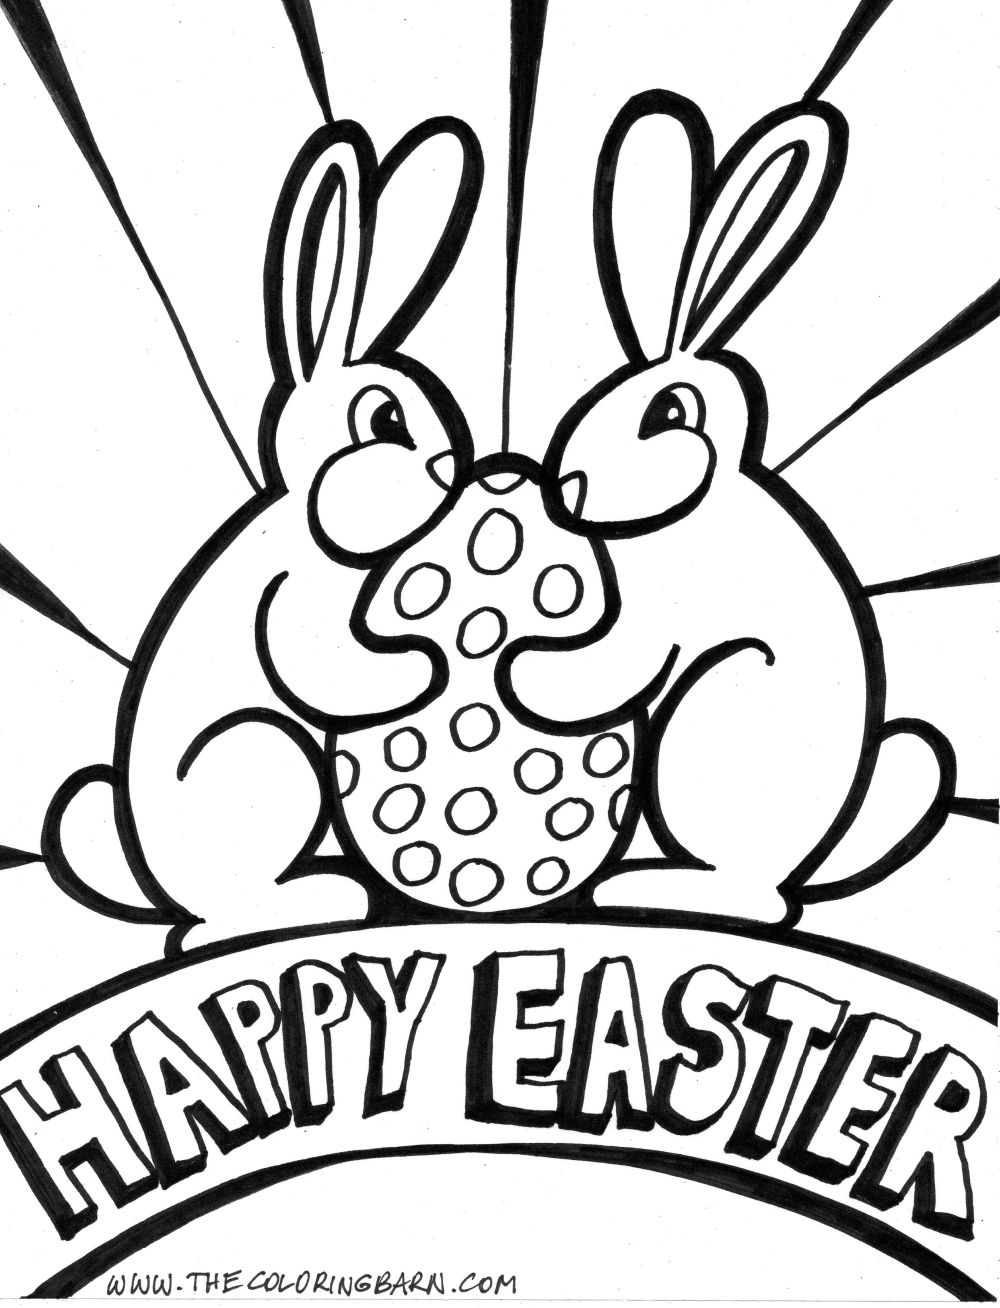 Spongebob Easter Bunny Coloring Page - Coloring Home